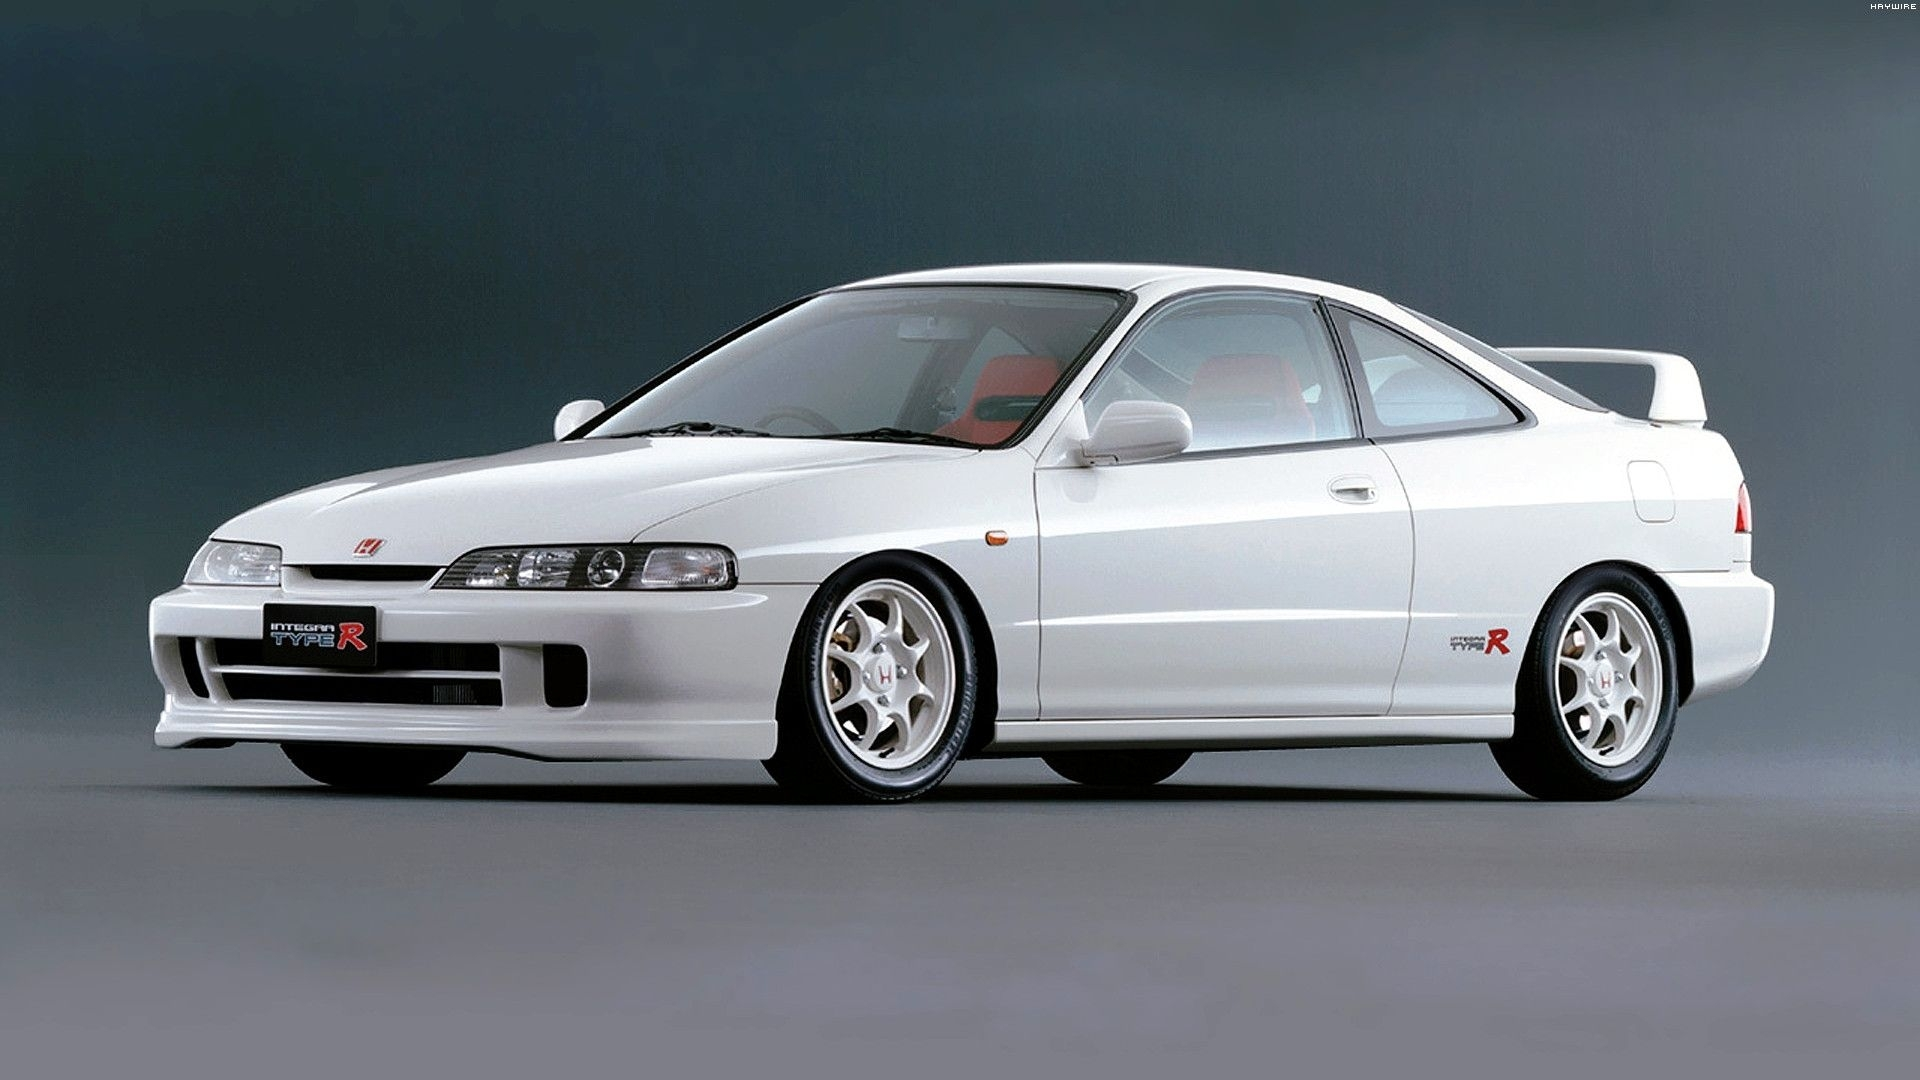 20 best integra type r wallpapers in high quality, valentin baumer